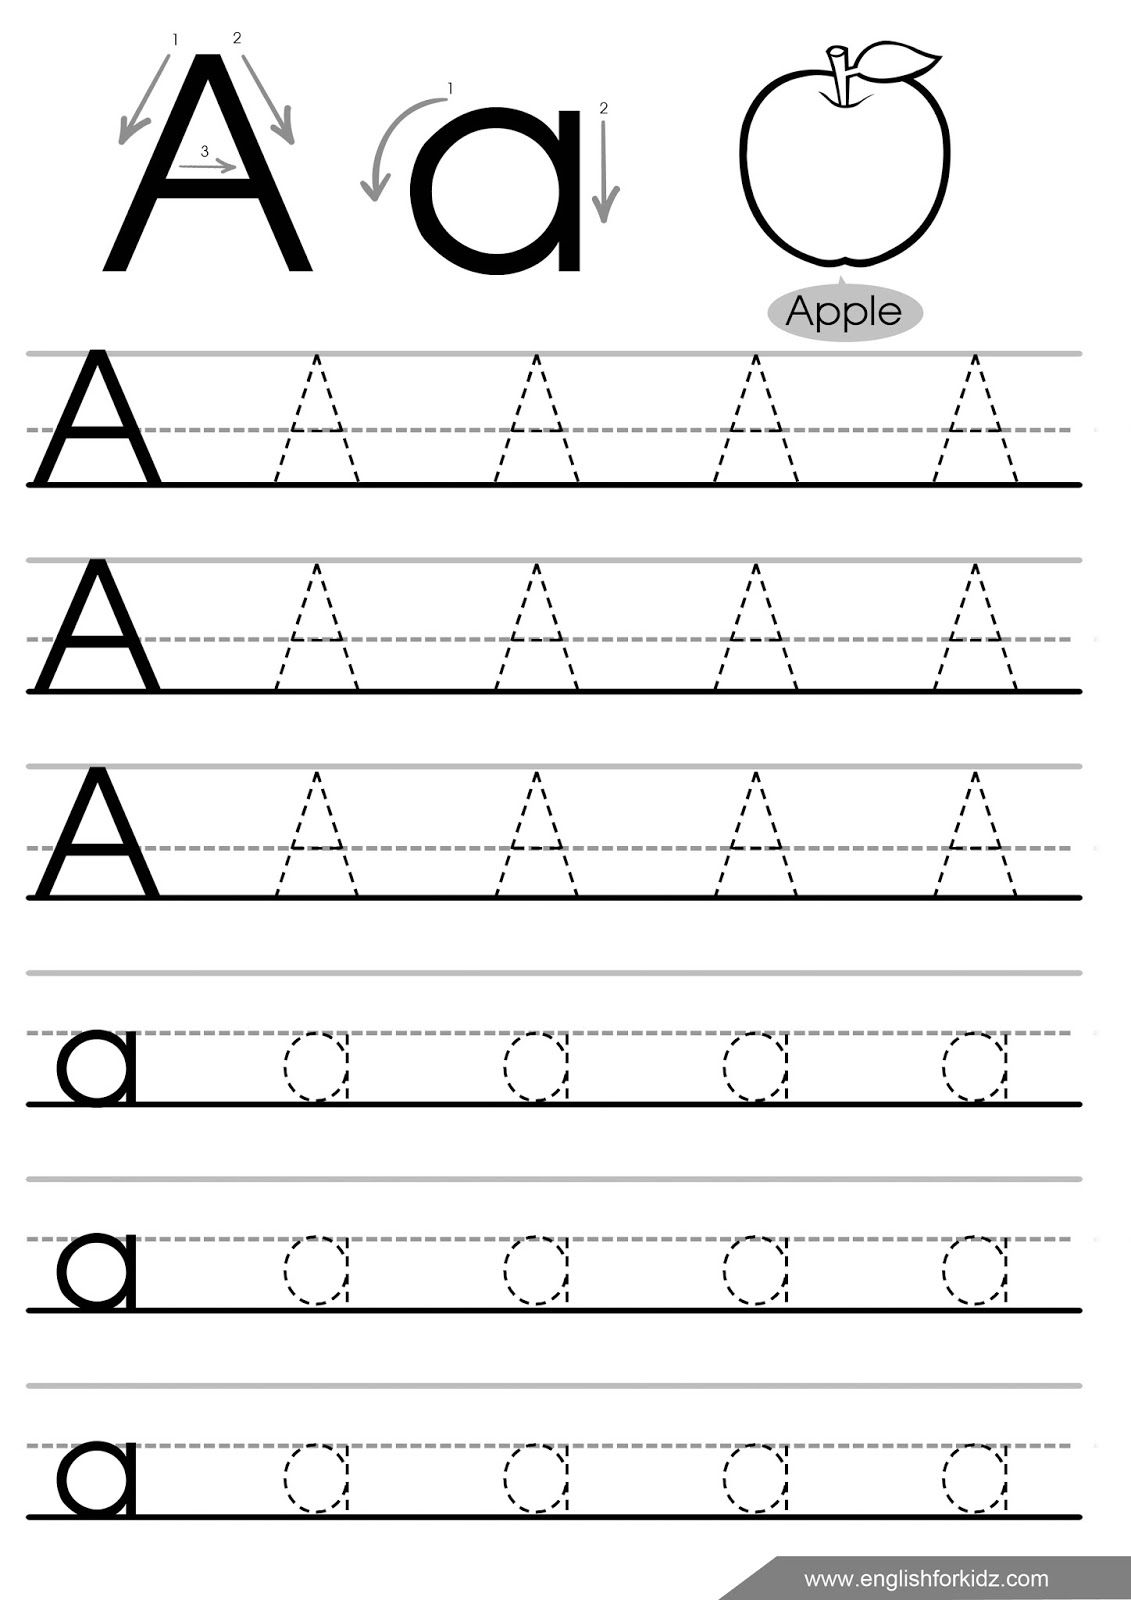 worksheet Letter Tracing Worksheet letter tracing worksheets fun for the kiddies pinterest worksheets